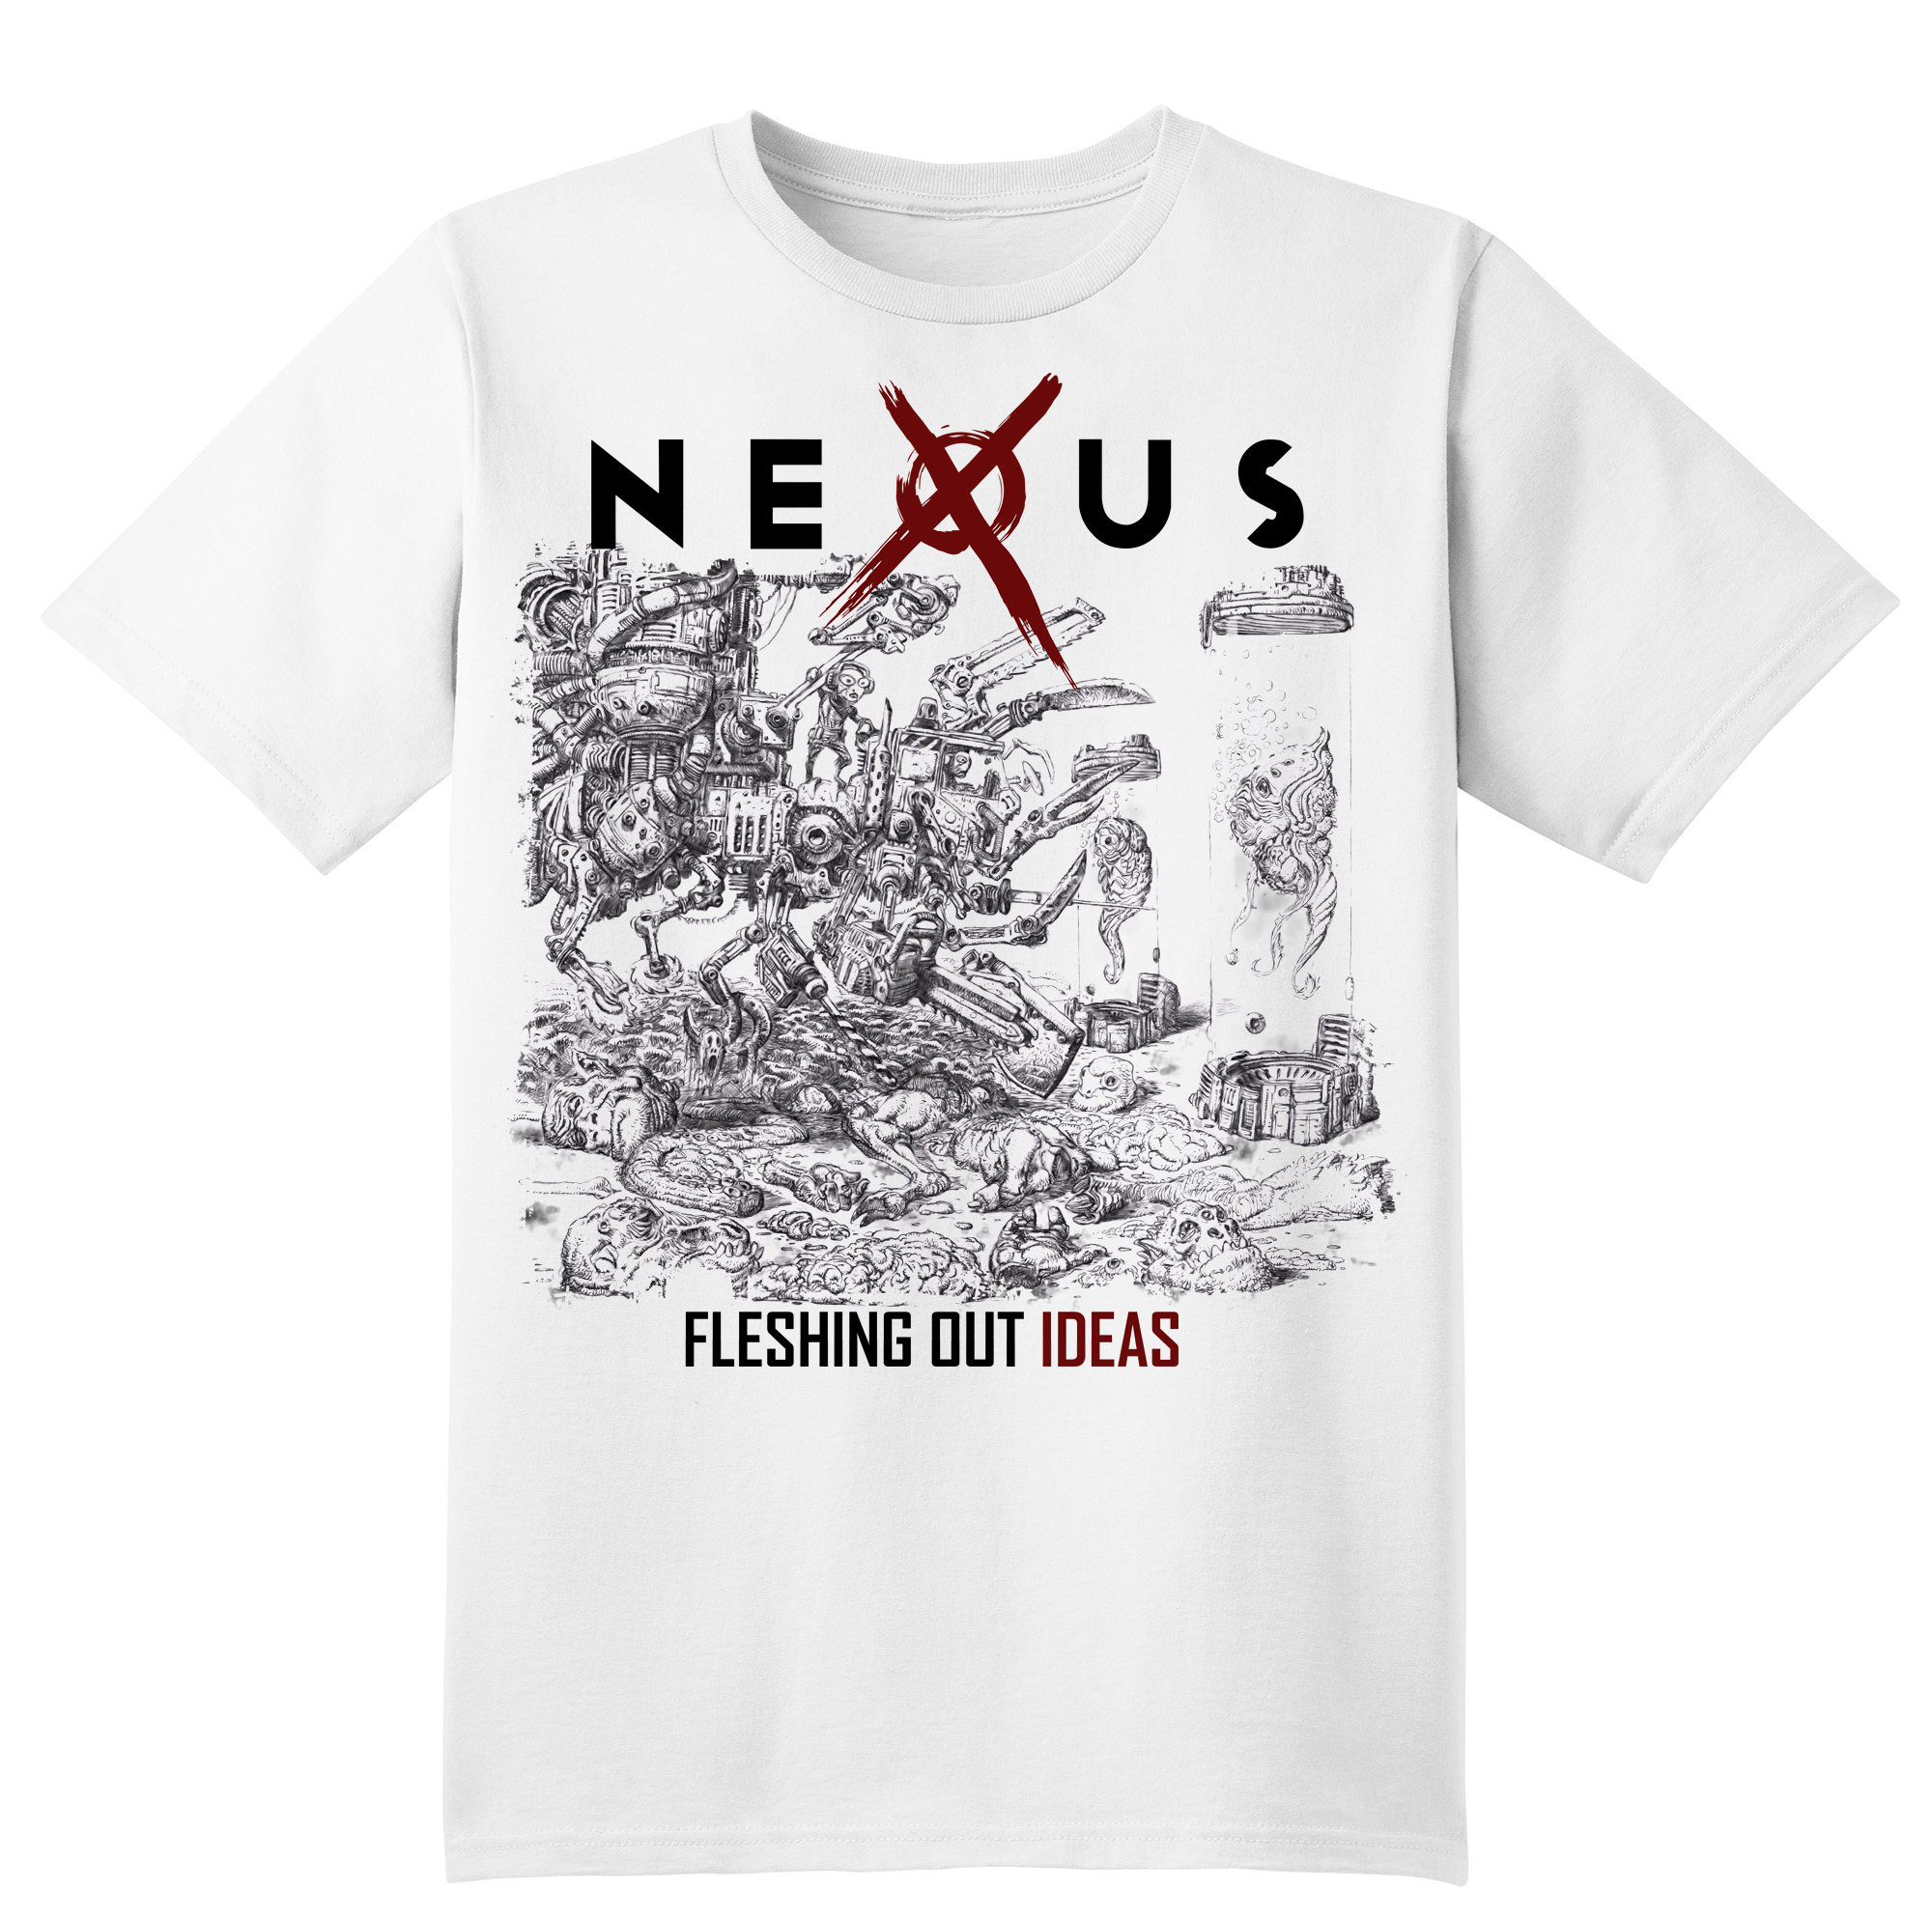 Nexus T-Shirt (Fleshing Out Ideas) NXTS01